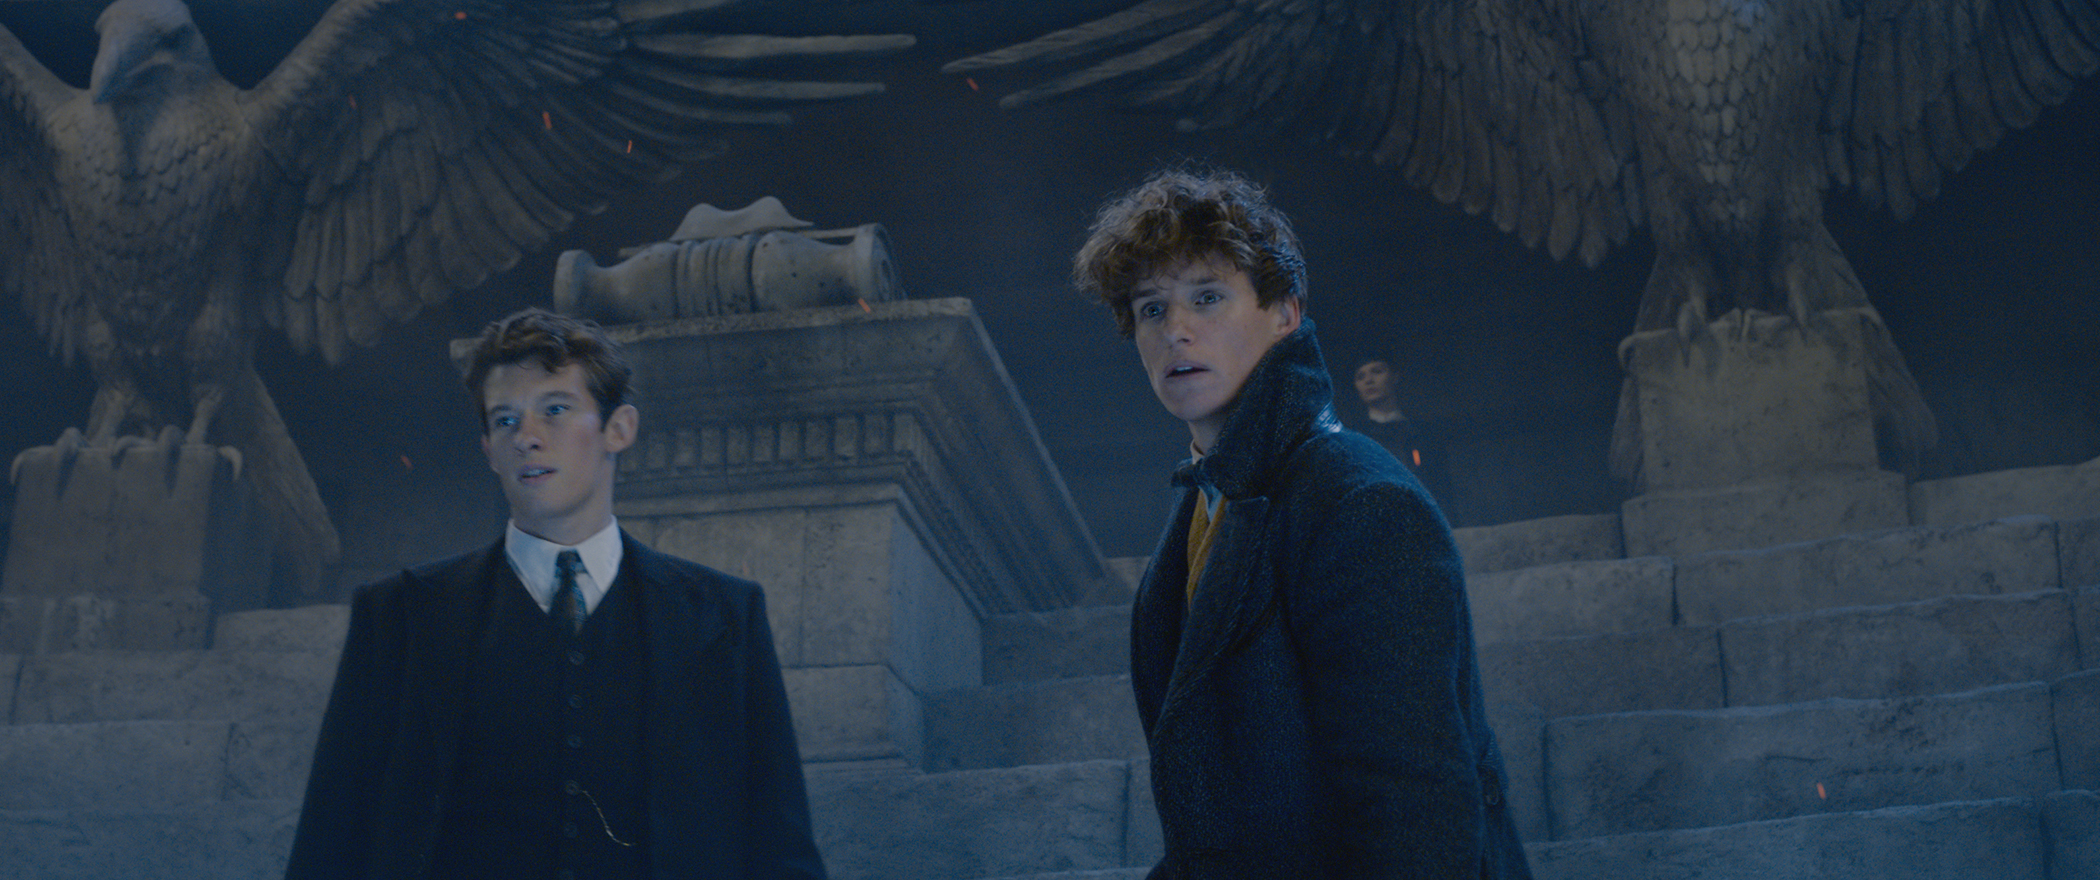 fantastic-beasts-2-images-6